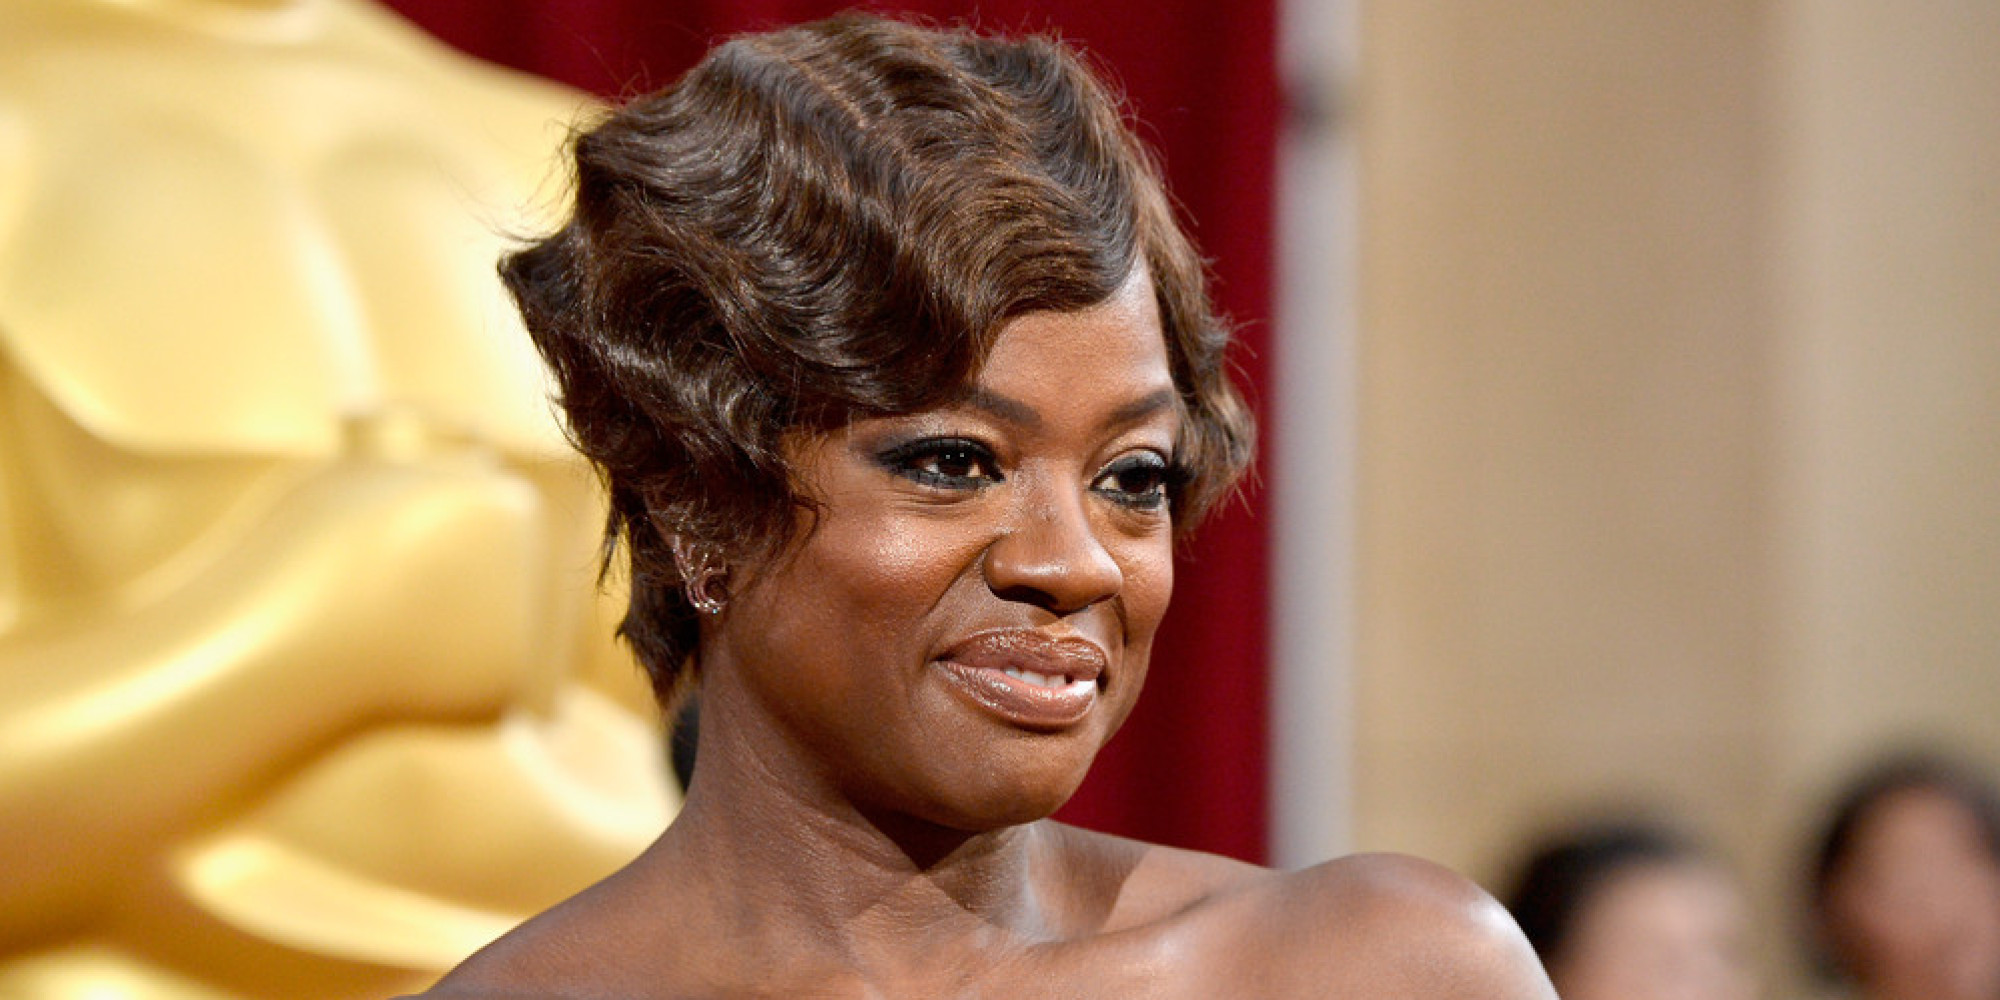 viola davis interviewviola davis gif, viola davis fences, viola davis oscar, viola davis young, viola davis denzel washington, viola davis movies, viola davis vk, viola davis imdb, viola davis оскар, viola davis кинопоиск, viola davis daughter, viola davis wikipedia, viola davis films, viola davis filmography, viola davis gif tumblr, viola davis site, viola davis awards, viola davis twitter, viola davis speech, viola davis interview